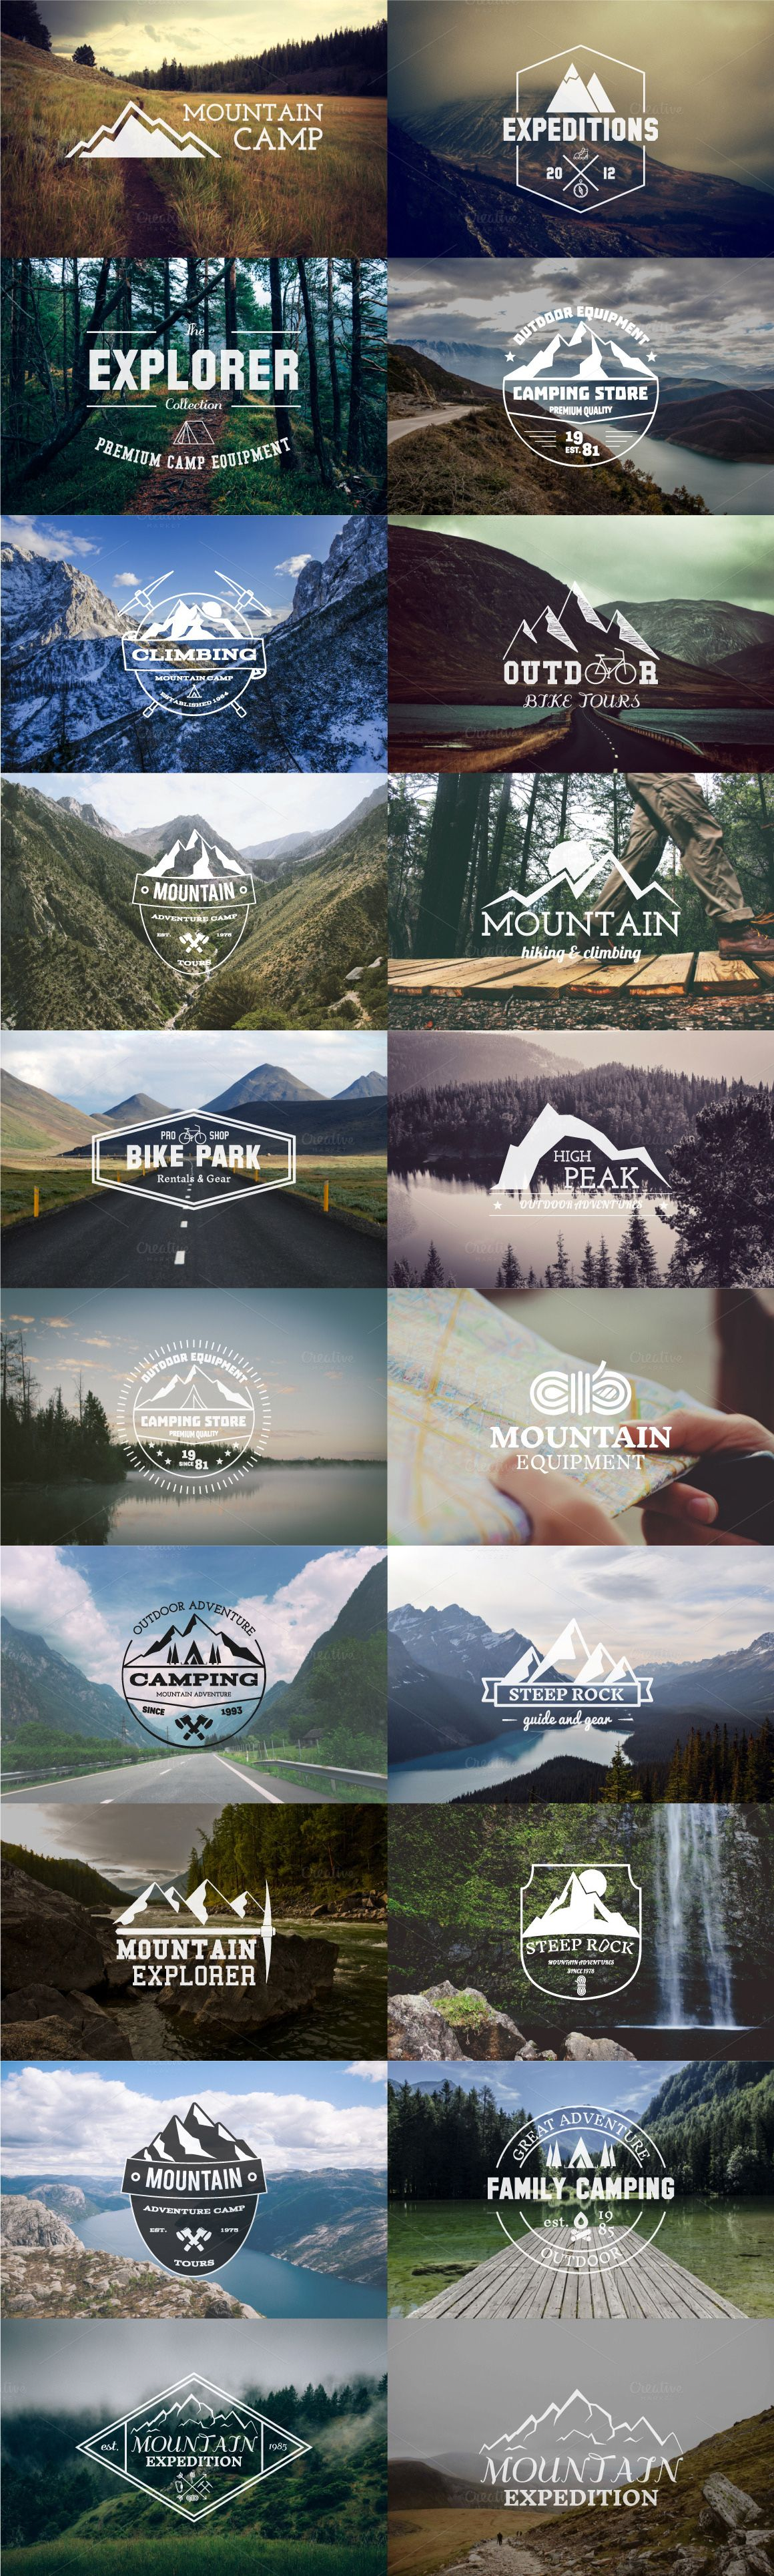 20 Adventure Badges & Logos #design Download: https://creativemarket.com/JeksonJS/342371?u=ksioks